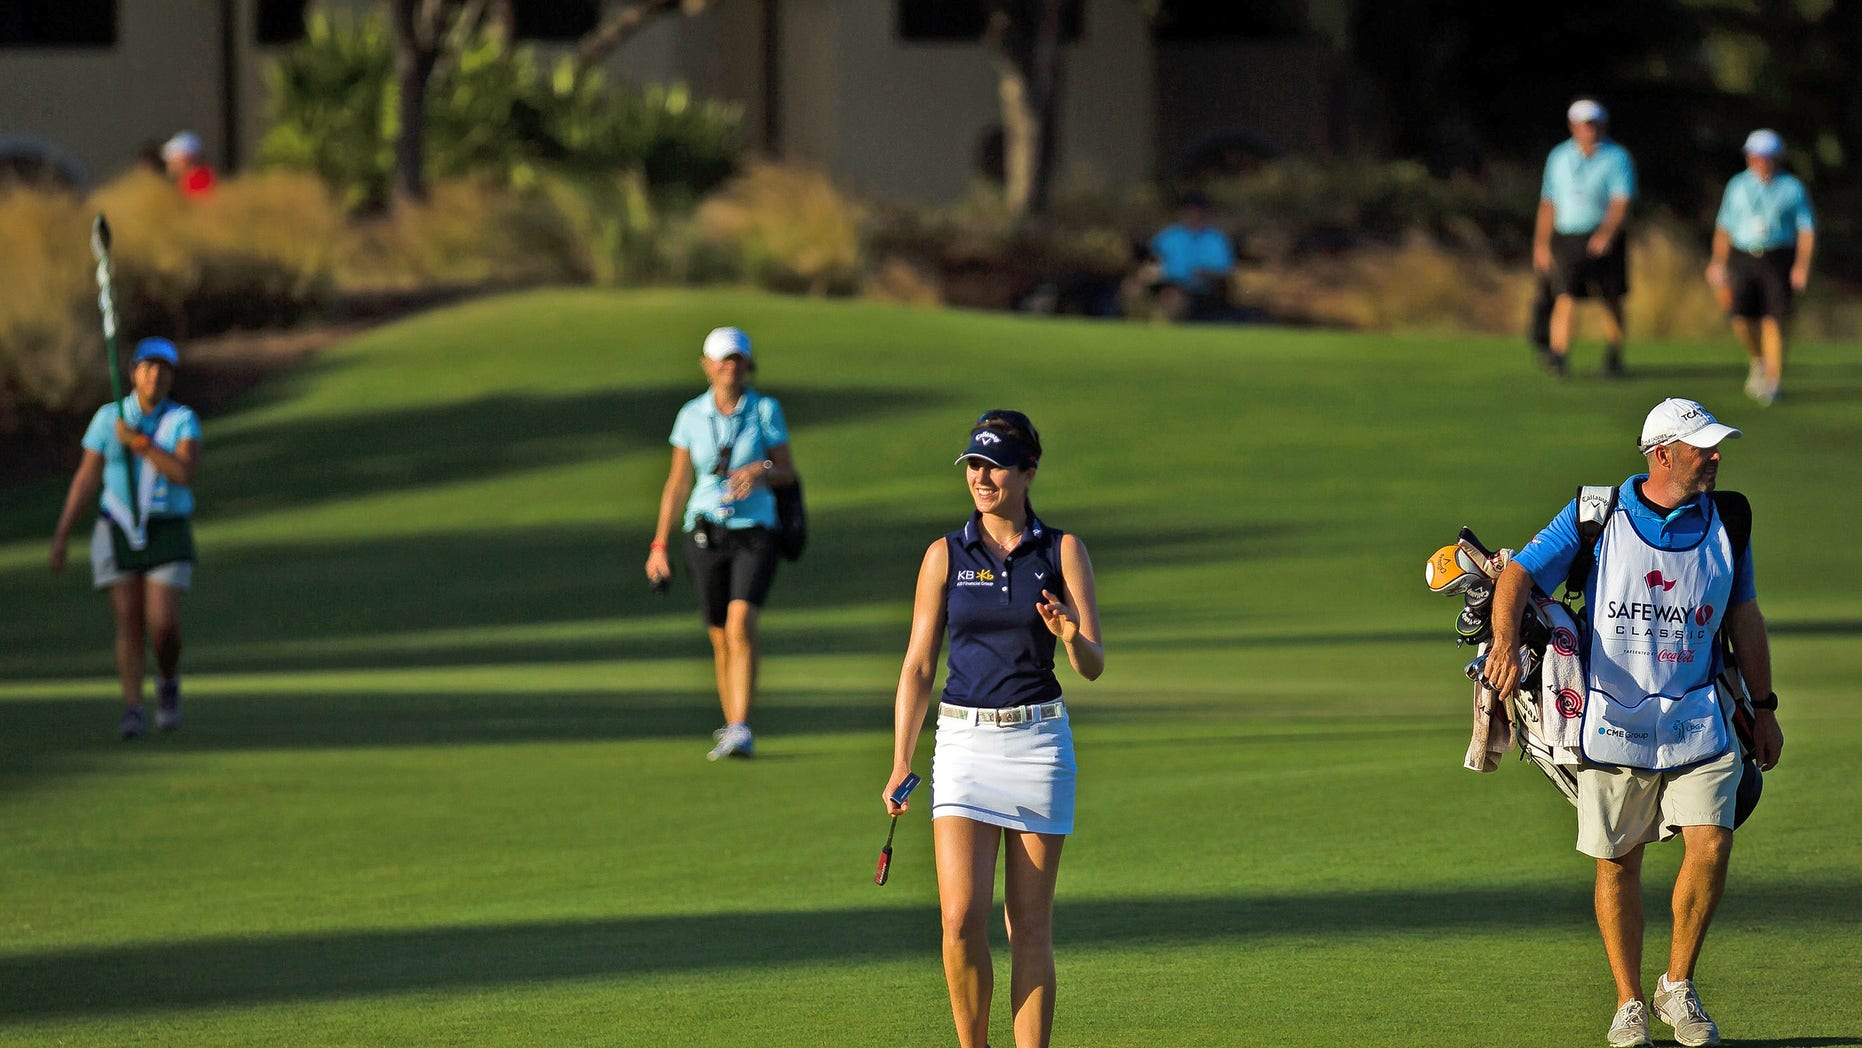 Sandra Gal waves to the crowd as she approaches the 18th green while playing in the second round of the LPGA Titleholders at the Tiburon Golf Club on Friday, Nov. 22, 2013, in Naples, Fla. Gal built a three-shot lead in the second round of the tournament.  (AP Photo/Naples Daily News, David Albers) FORT MYERS OUT